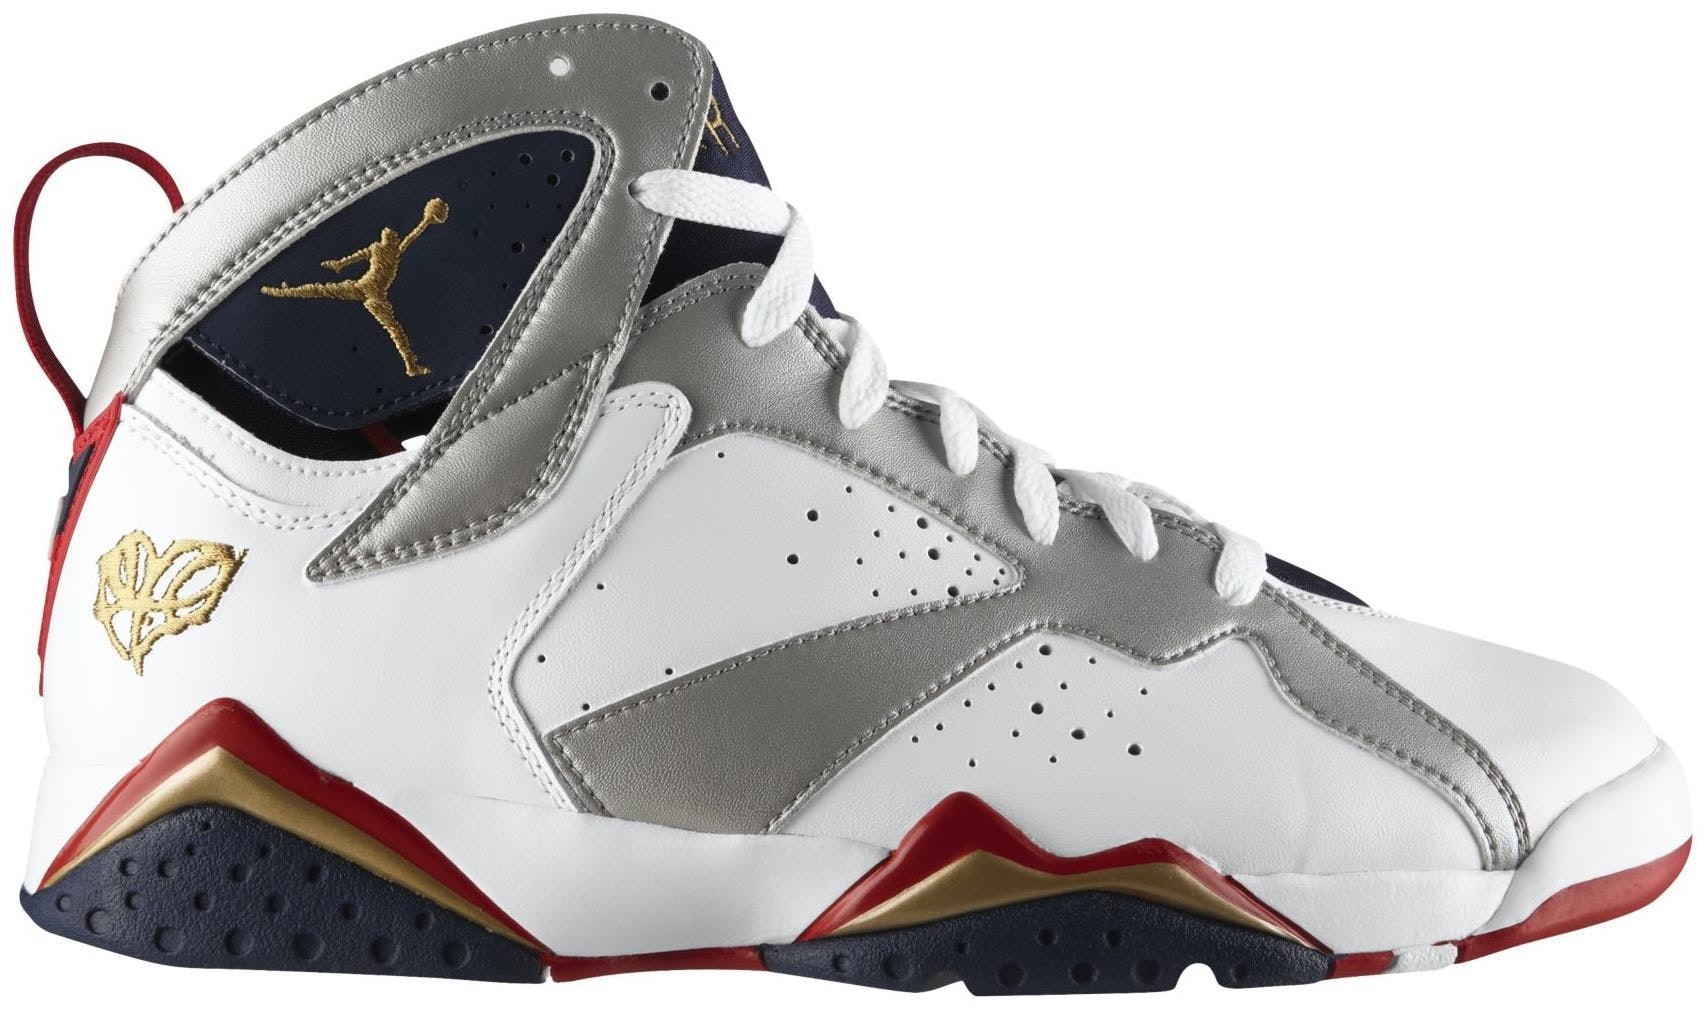 Jordan 7 Retro For The Love of the Game